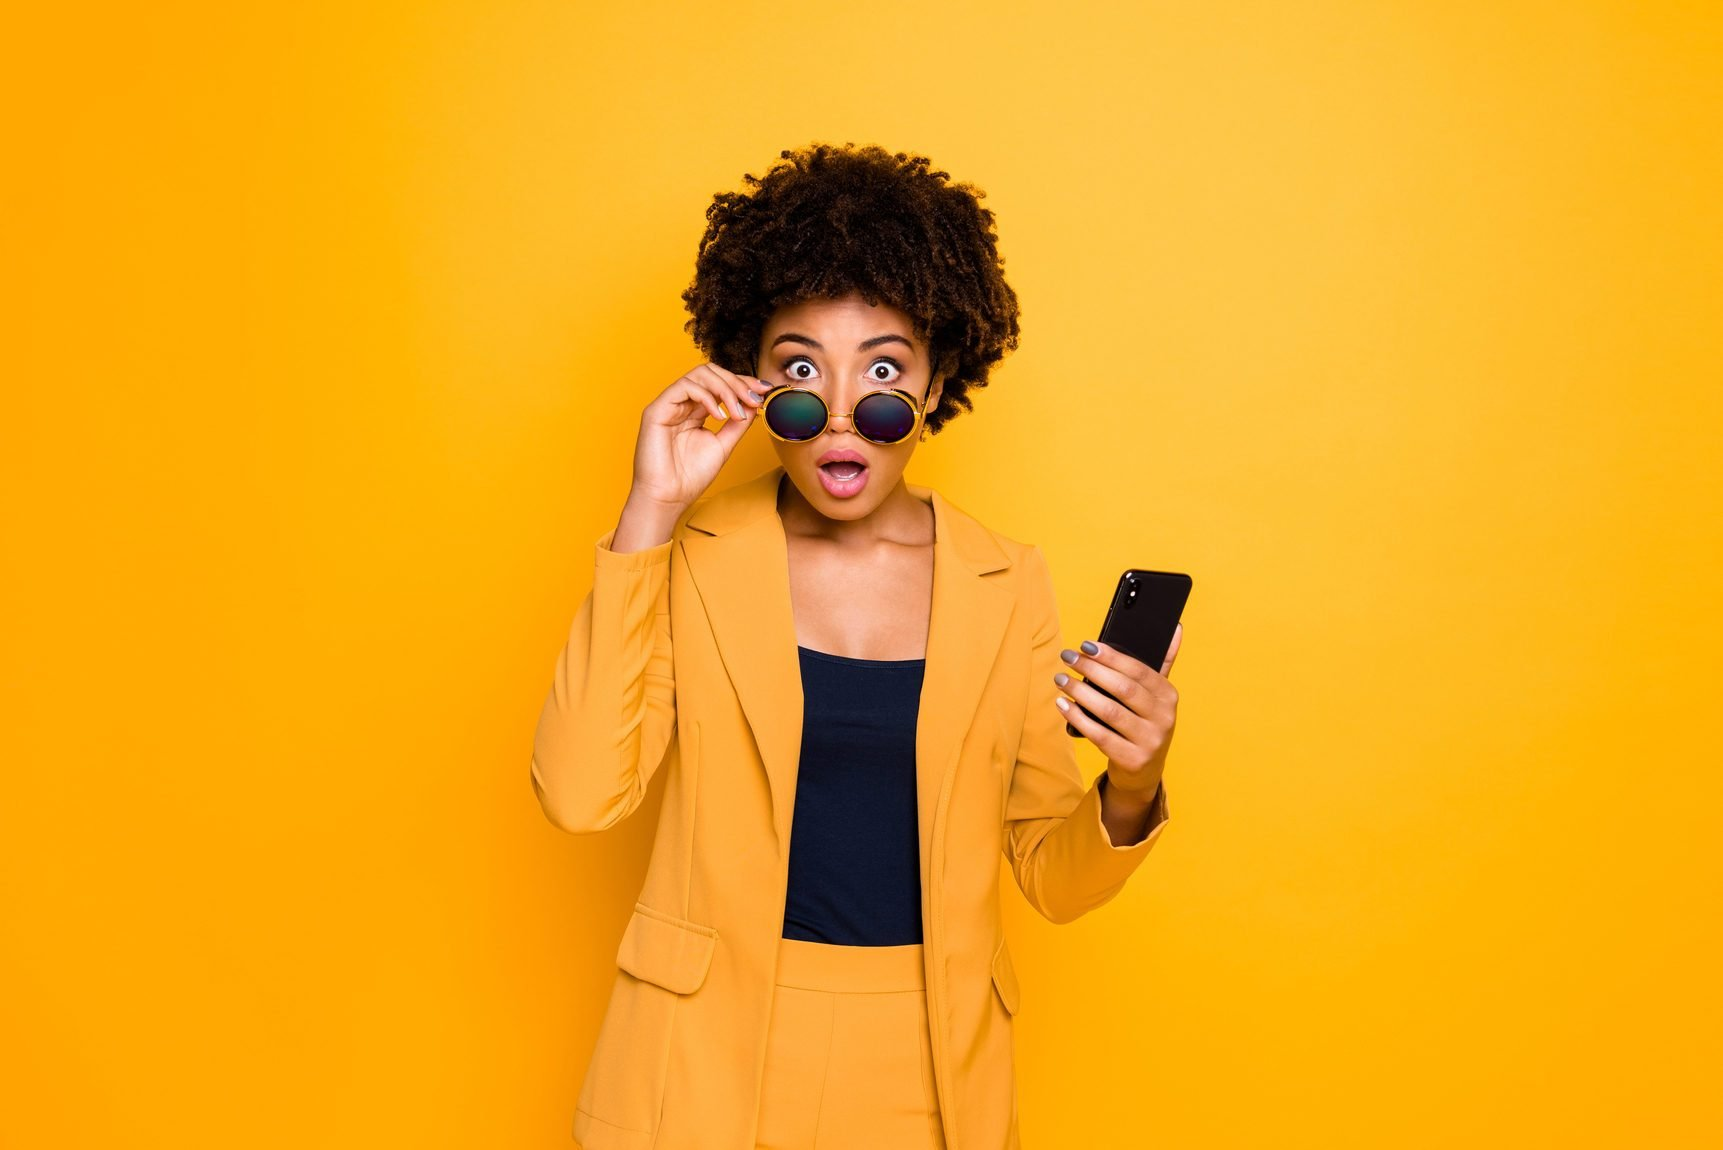 Portrait of shocked afro american girl use smartphone read news on social network account get notification about dislike scream omg wear stylish fashionable clothes isolated yellow color background